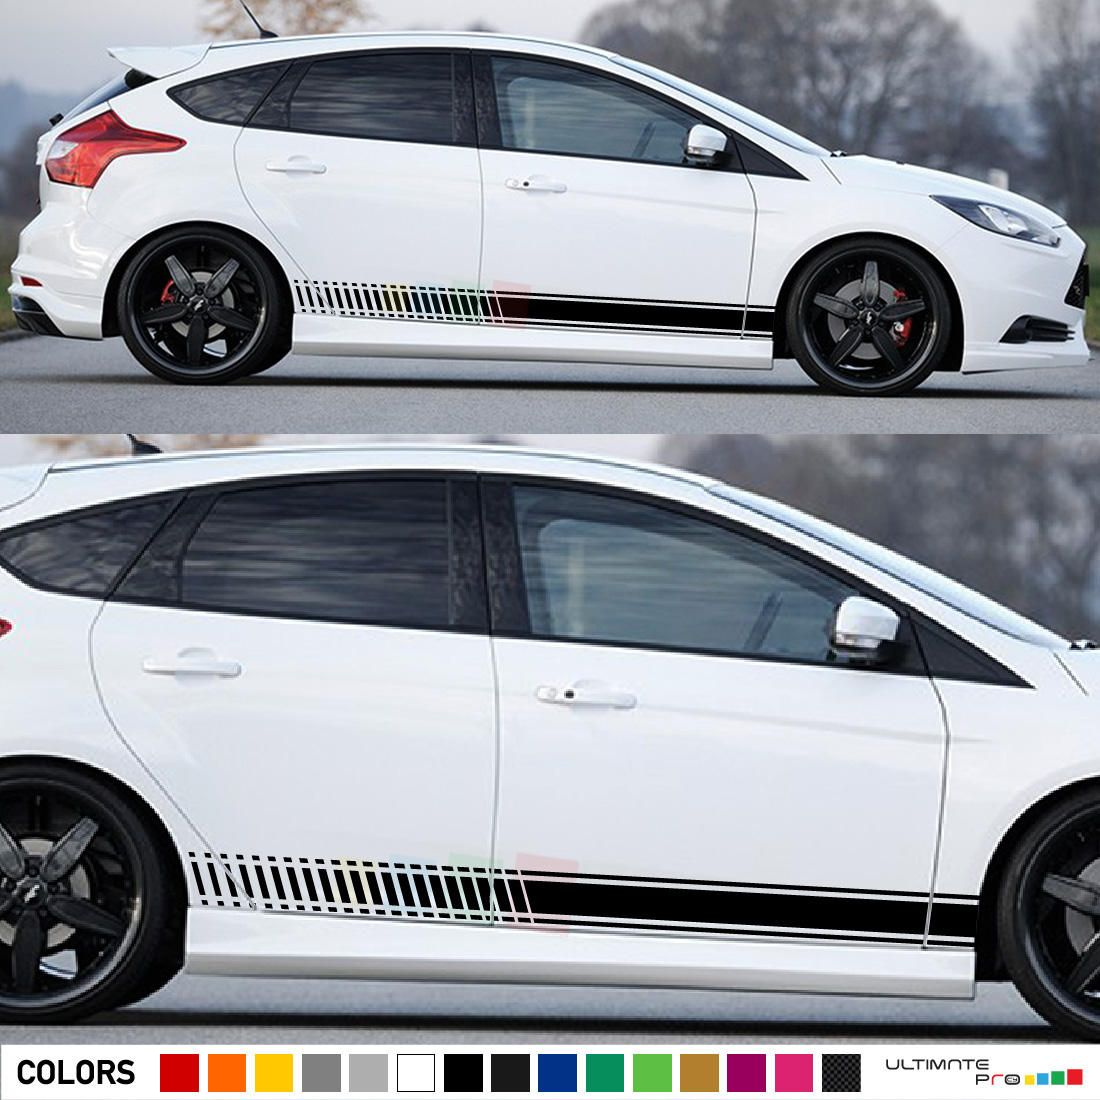 2x Decal Sticker Vinyl Side Racing Stripes Compatible With Ford Focus 4 Doors Rs St 2010 2016 With Images Ford Focus Volkswagen Phaeton Racing Stripes